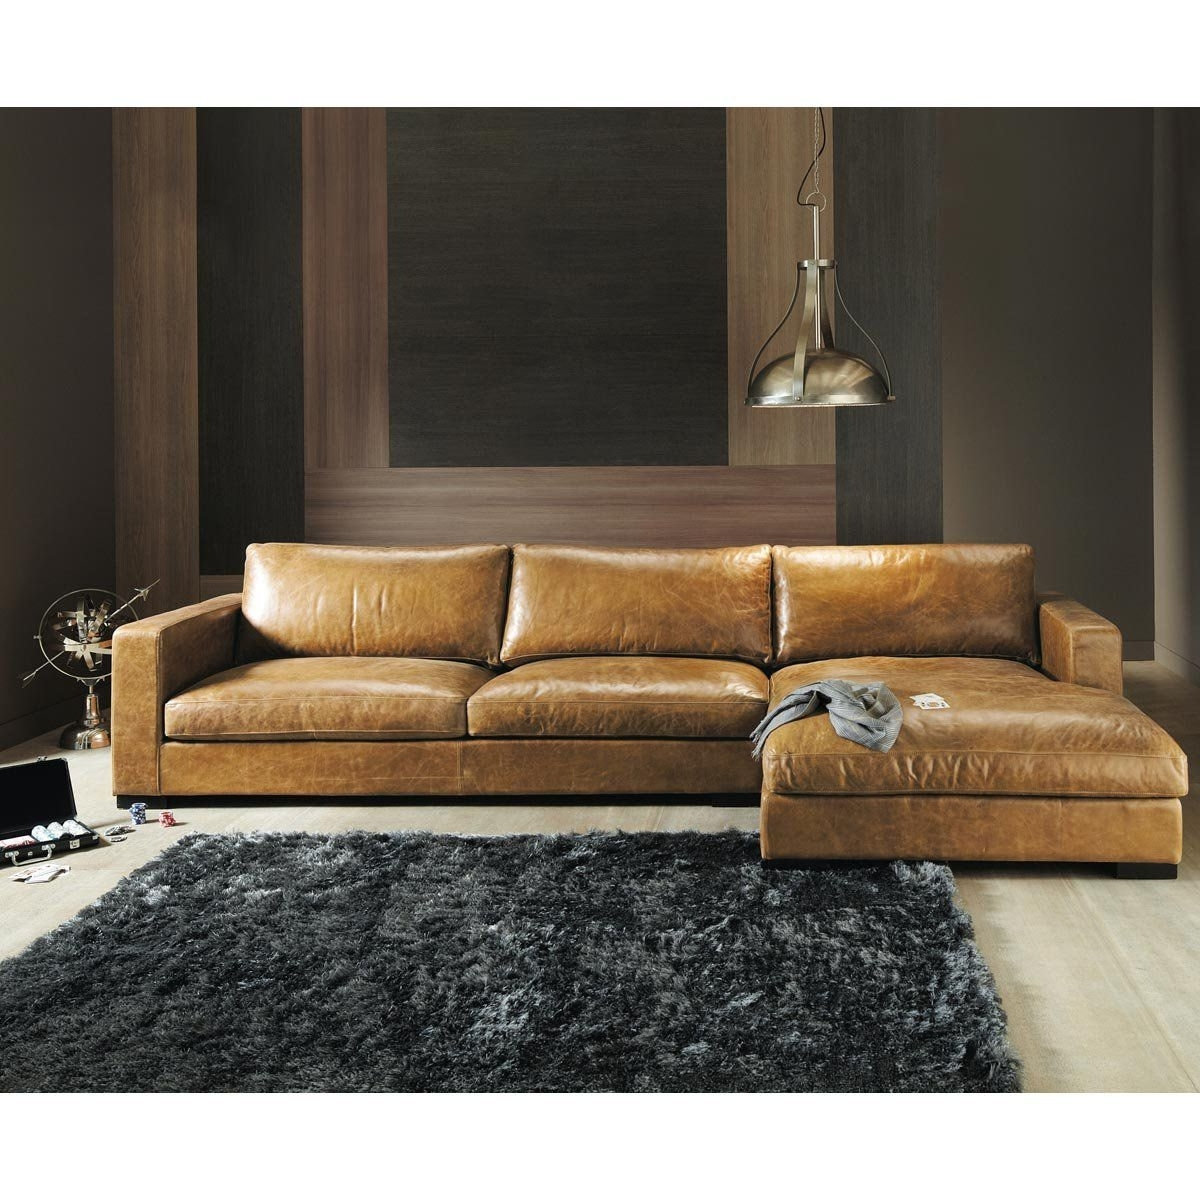 Sofa Seats, Leather Pertaining To Trendy Camel Sectional Sofas (View 11 of 20)